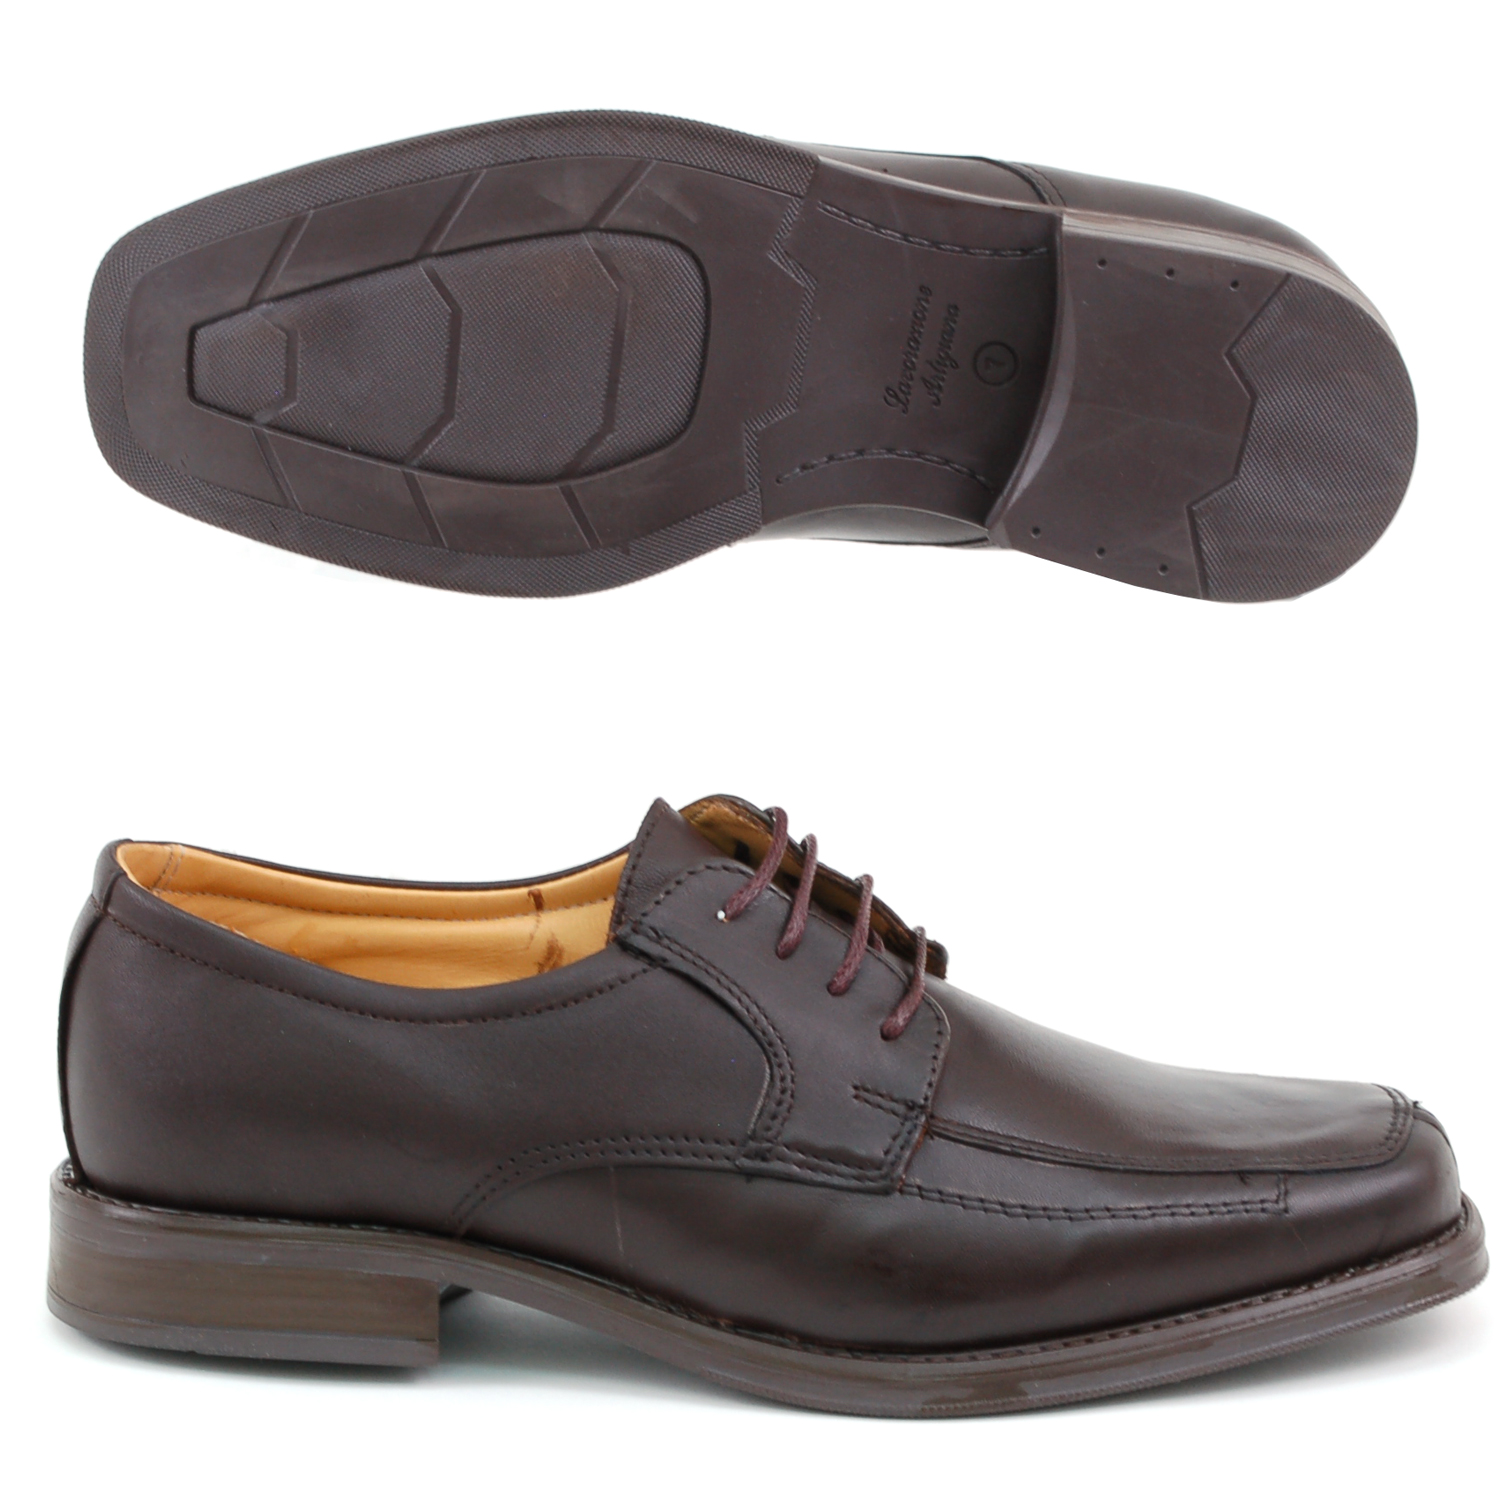 Mens-Lace-Up-Oxfords-Dress-Shoes-Genuine-Leather-Moc-Toe-Giorgio-Brutini-Padded thumbnail 20